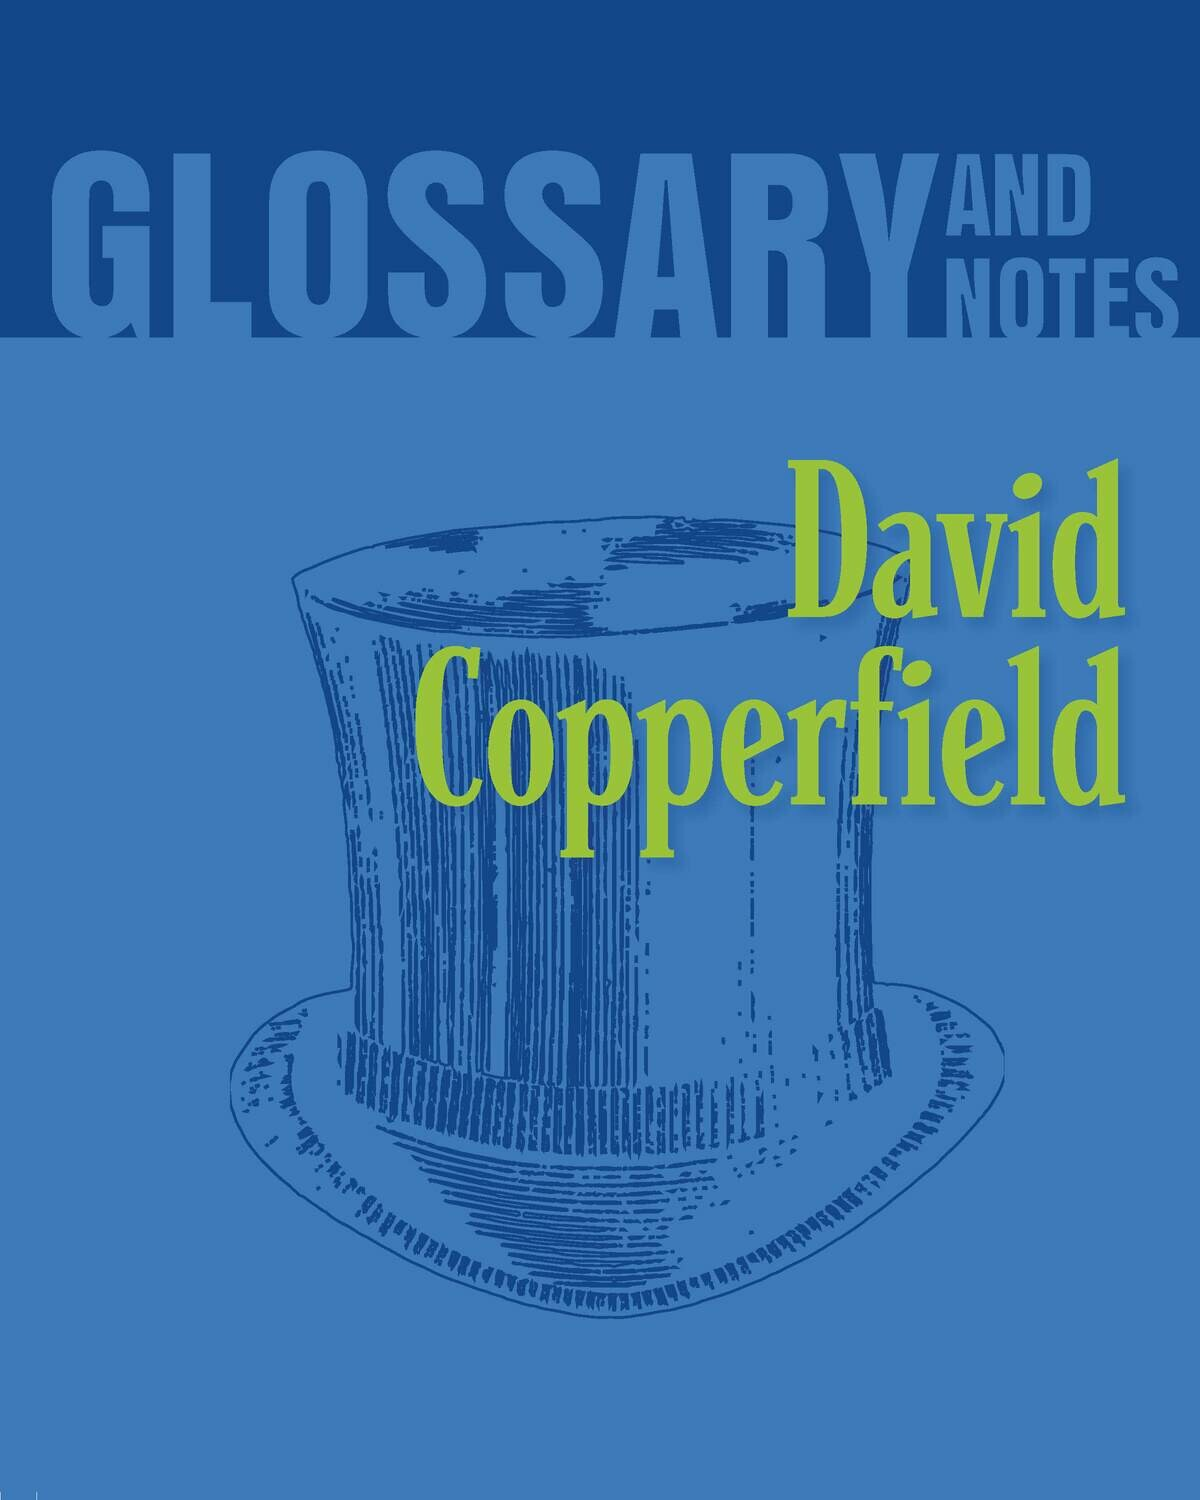 Glossary and Notes - David Copperfield